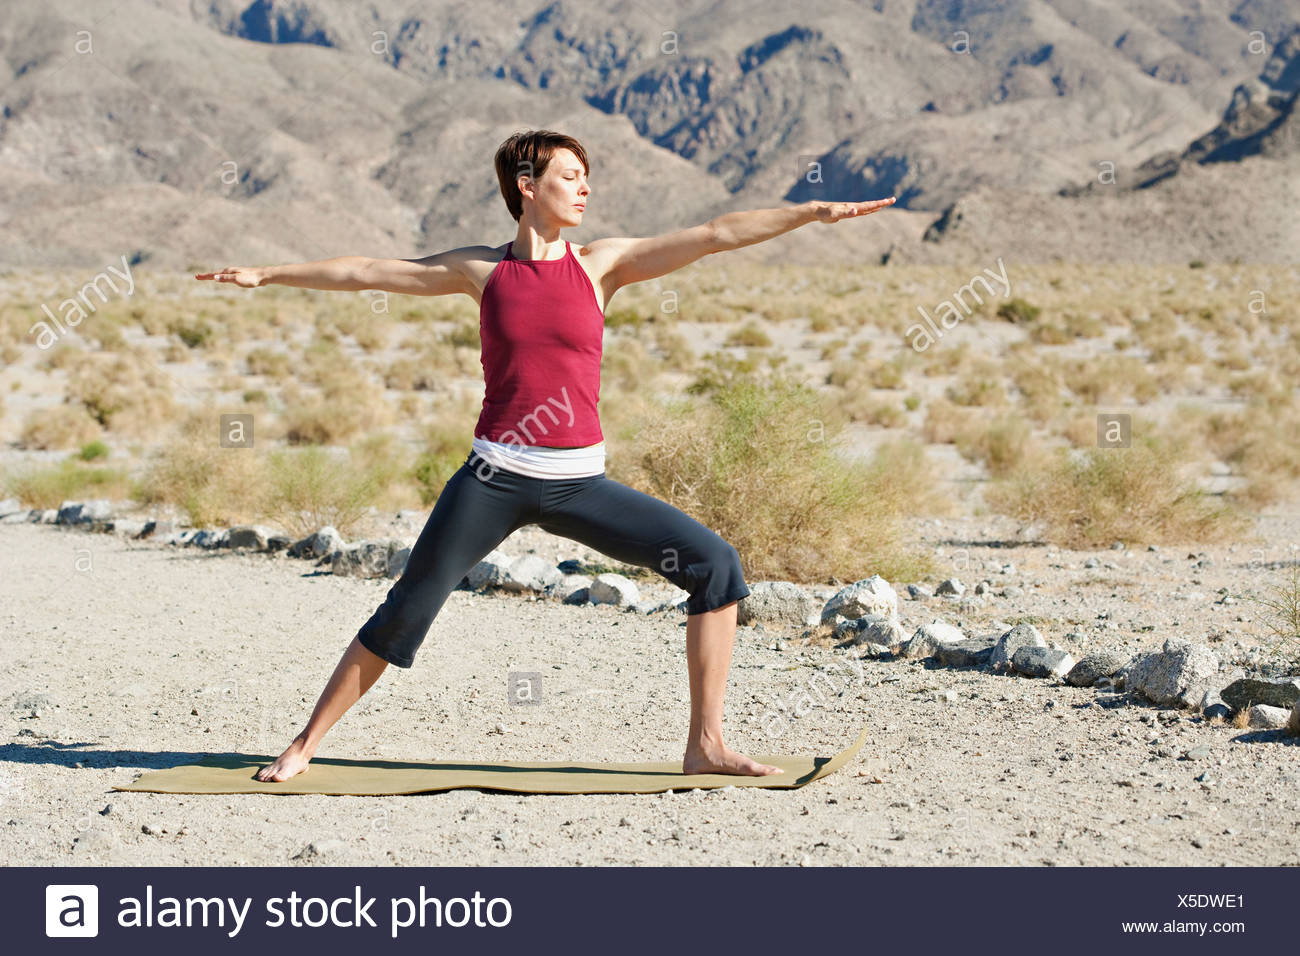 USA, California, La Quinta, Woman standing in yoga warrior pose in desert landscape - Stock Image